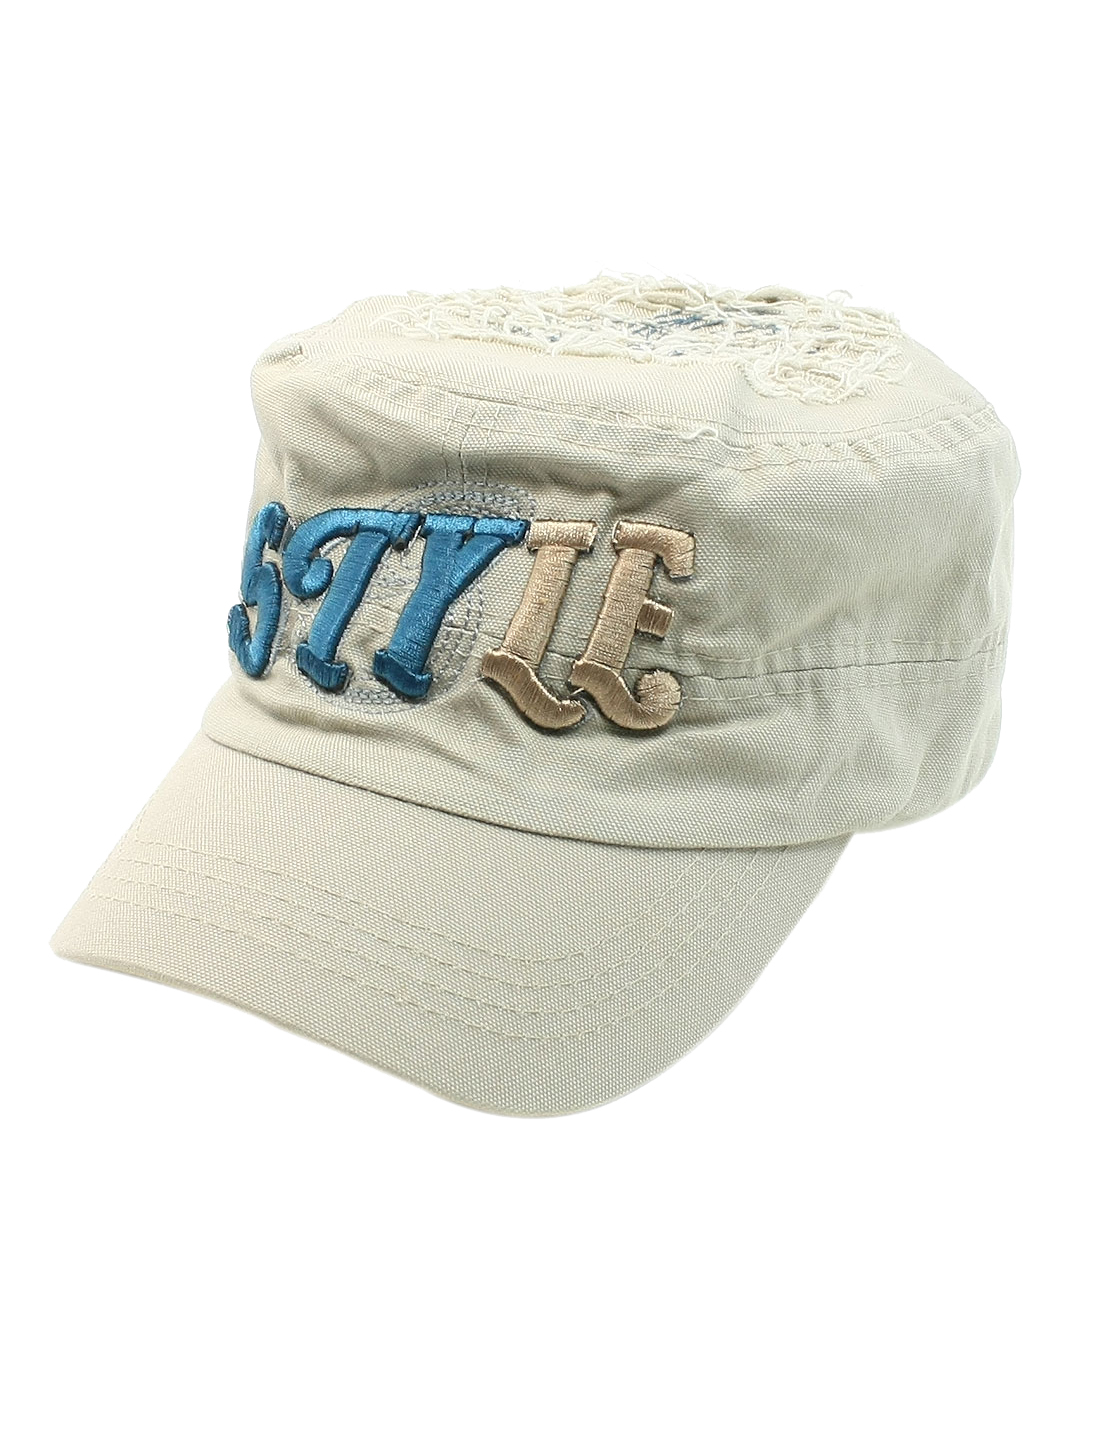 Unisex Embroidering Letter Front Decor Adjustable Peaked Cap Light Gray